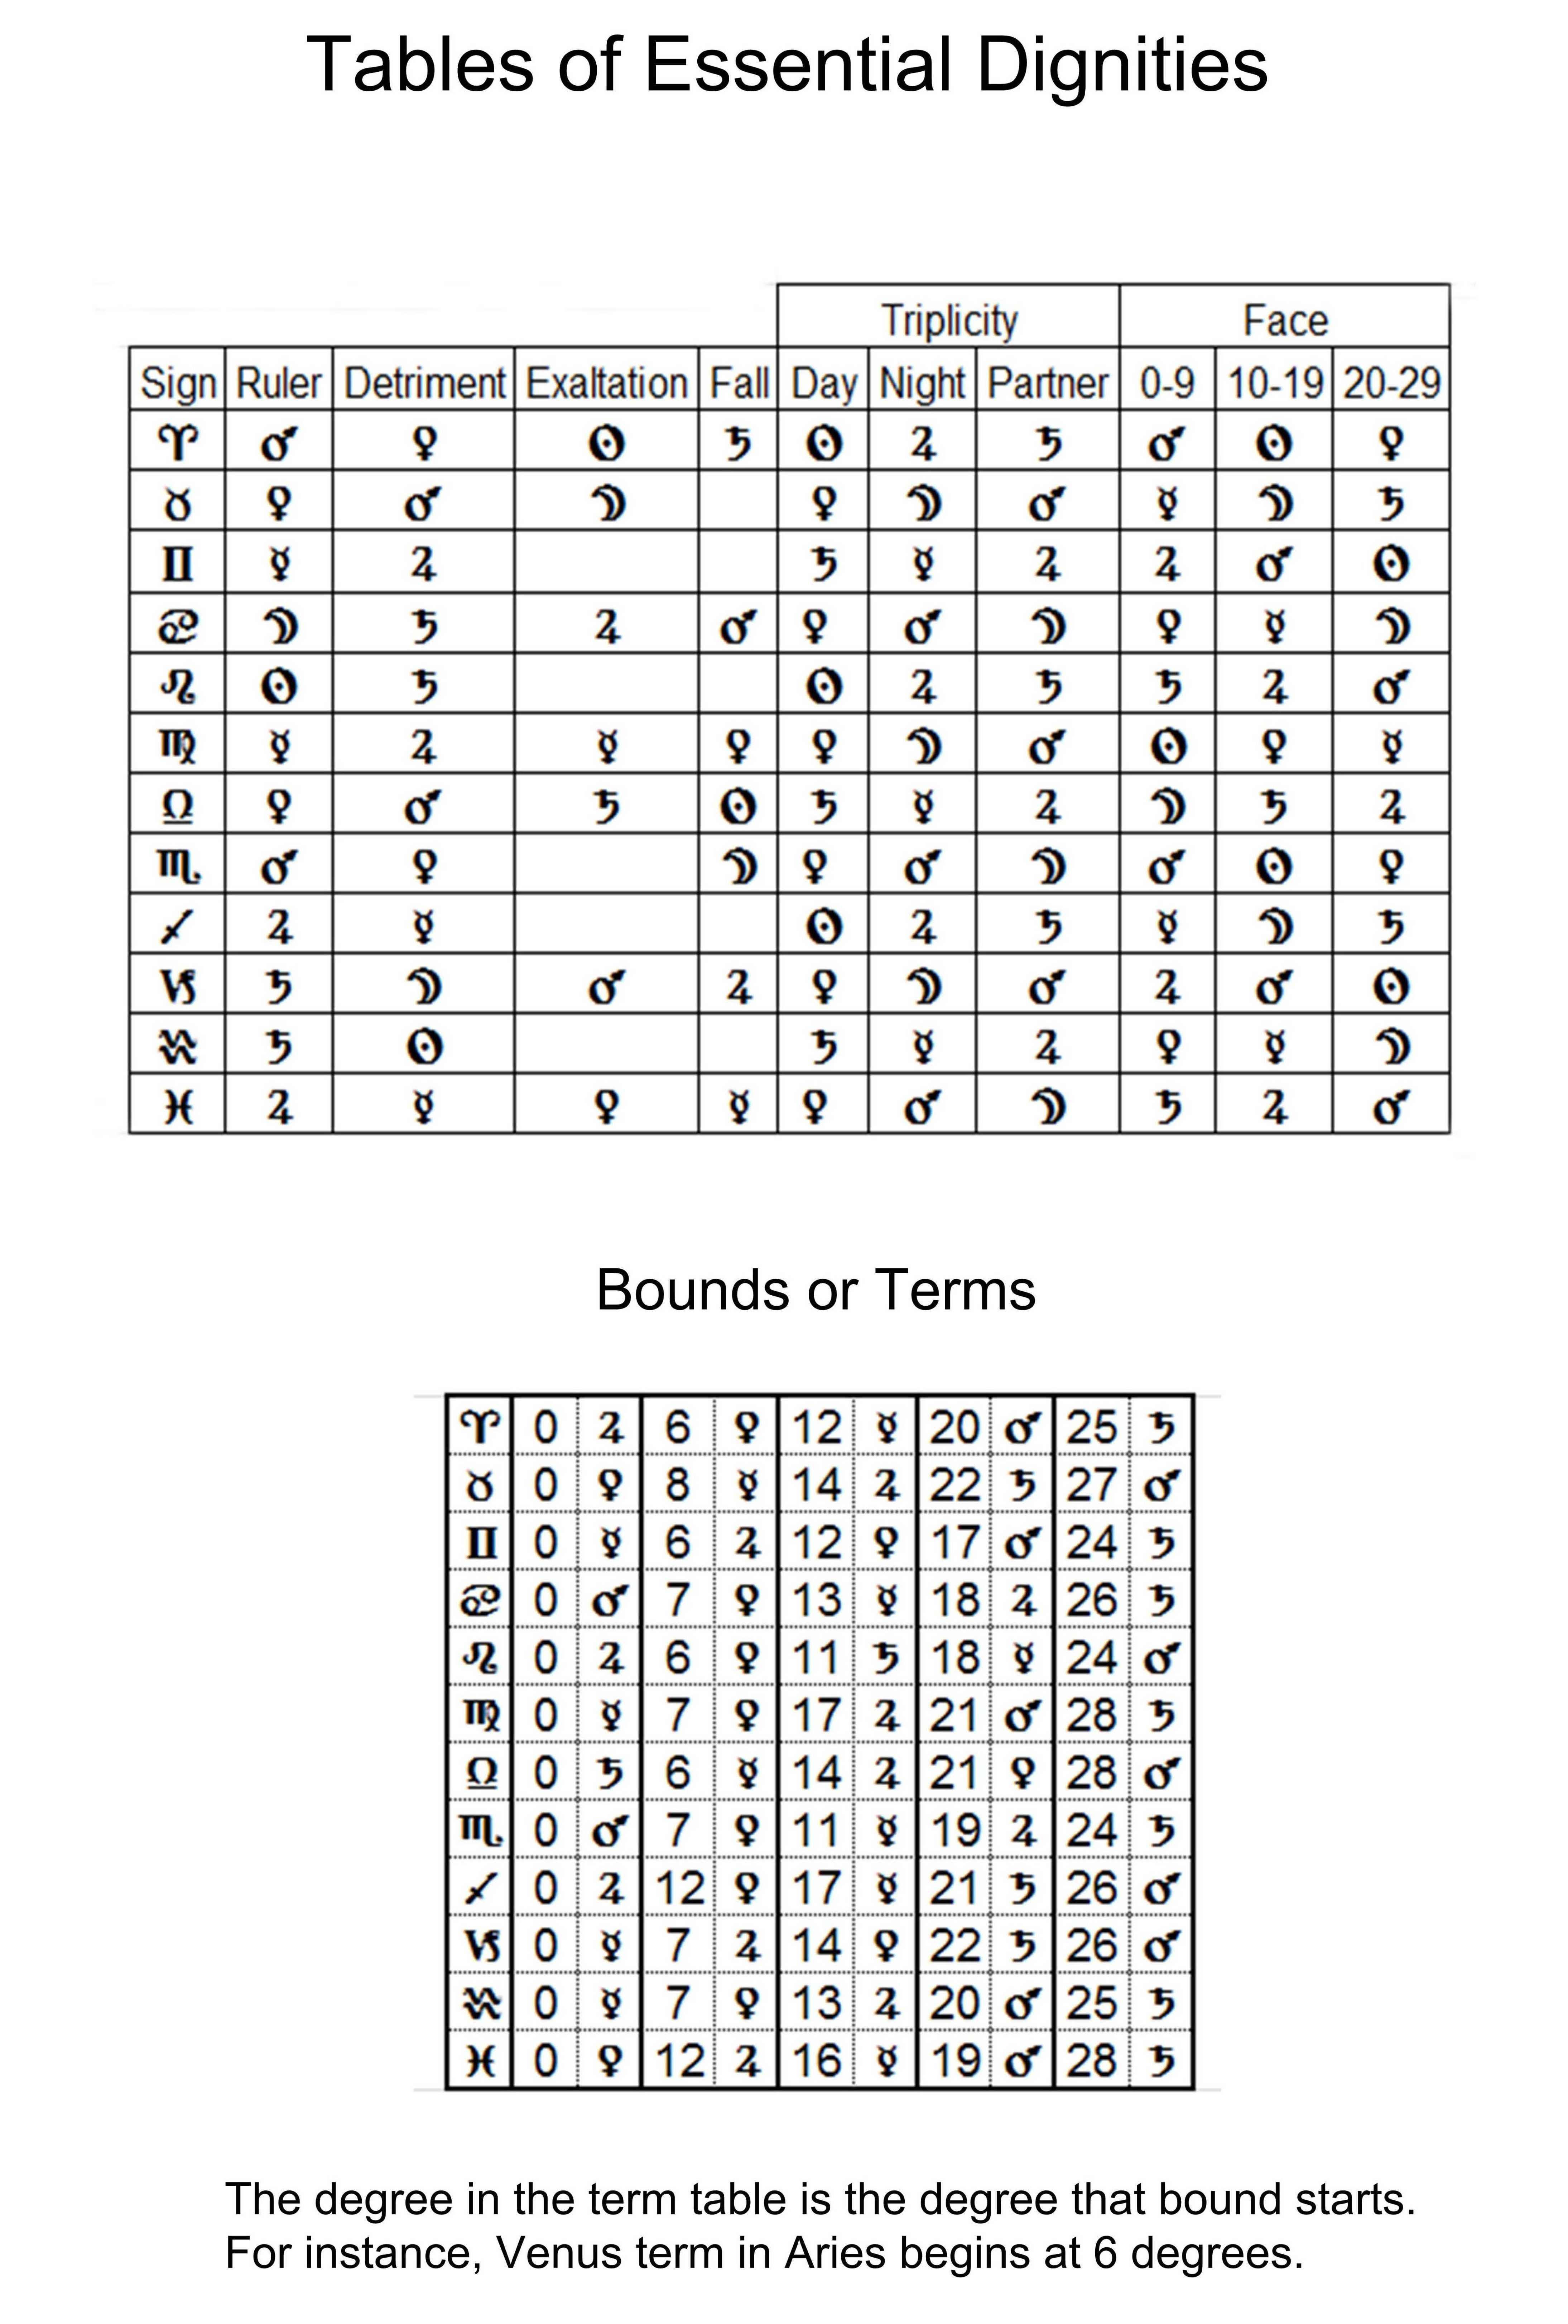 Dignity tables astrology morinus is a free open source program dignity tables astrology morinus is a free open source program that can be used nvjuhfo Gallery